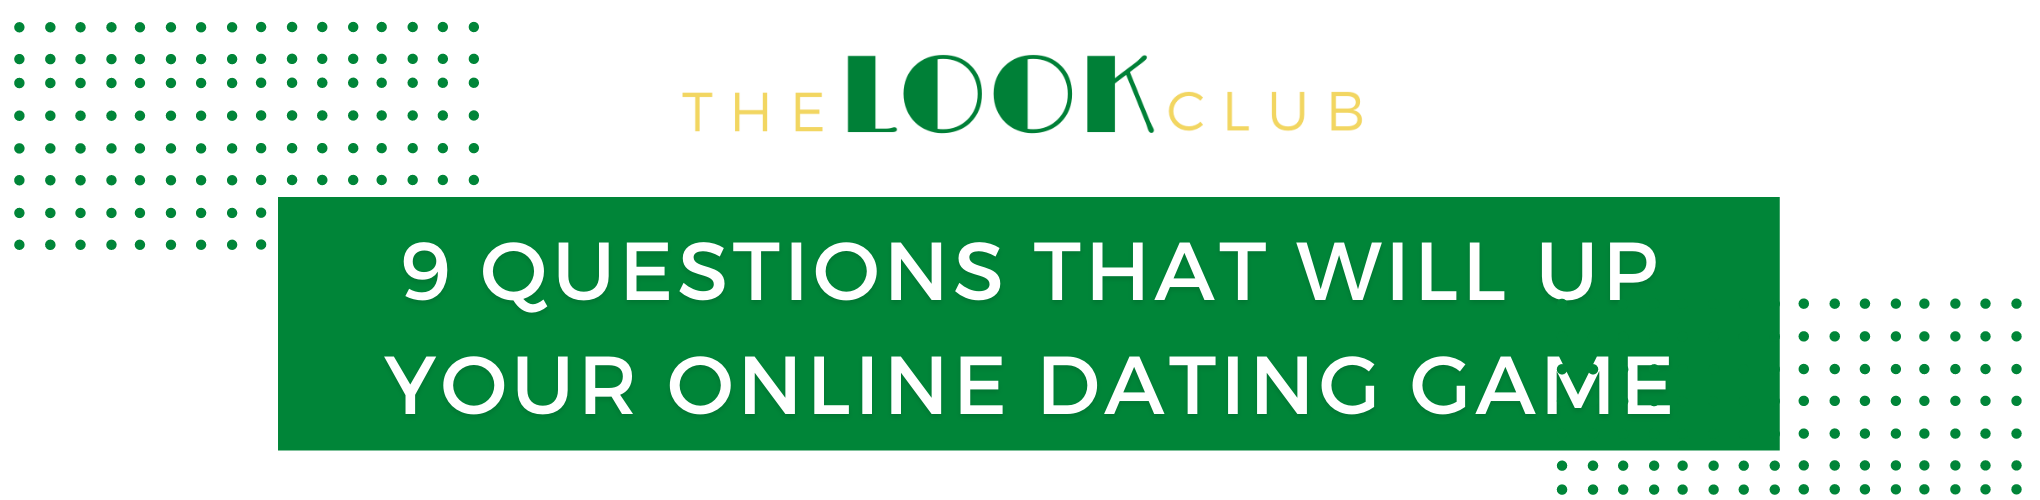 9 Questions That Will Up Your Online Dating Game